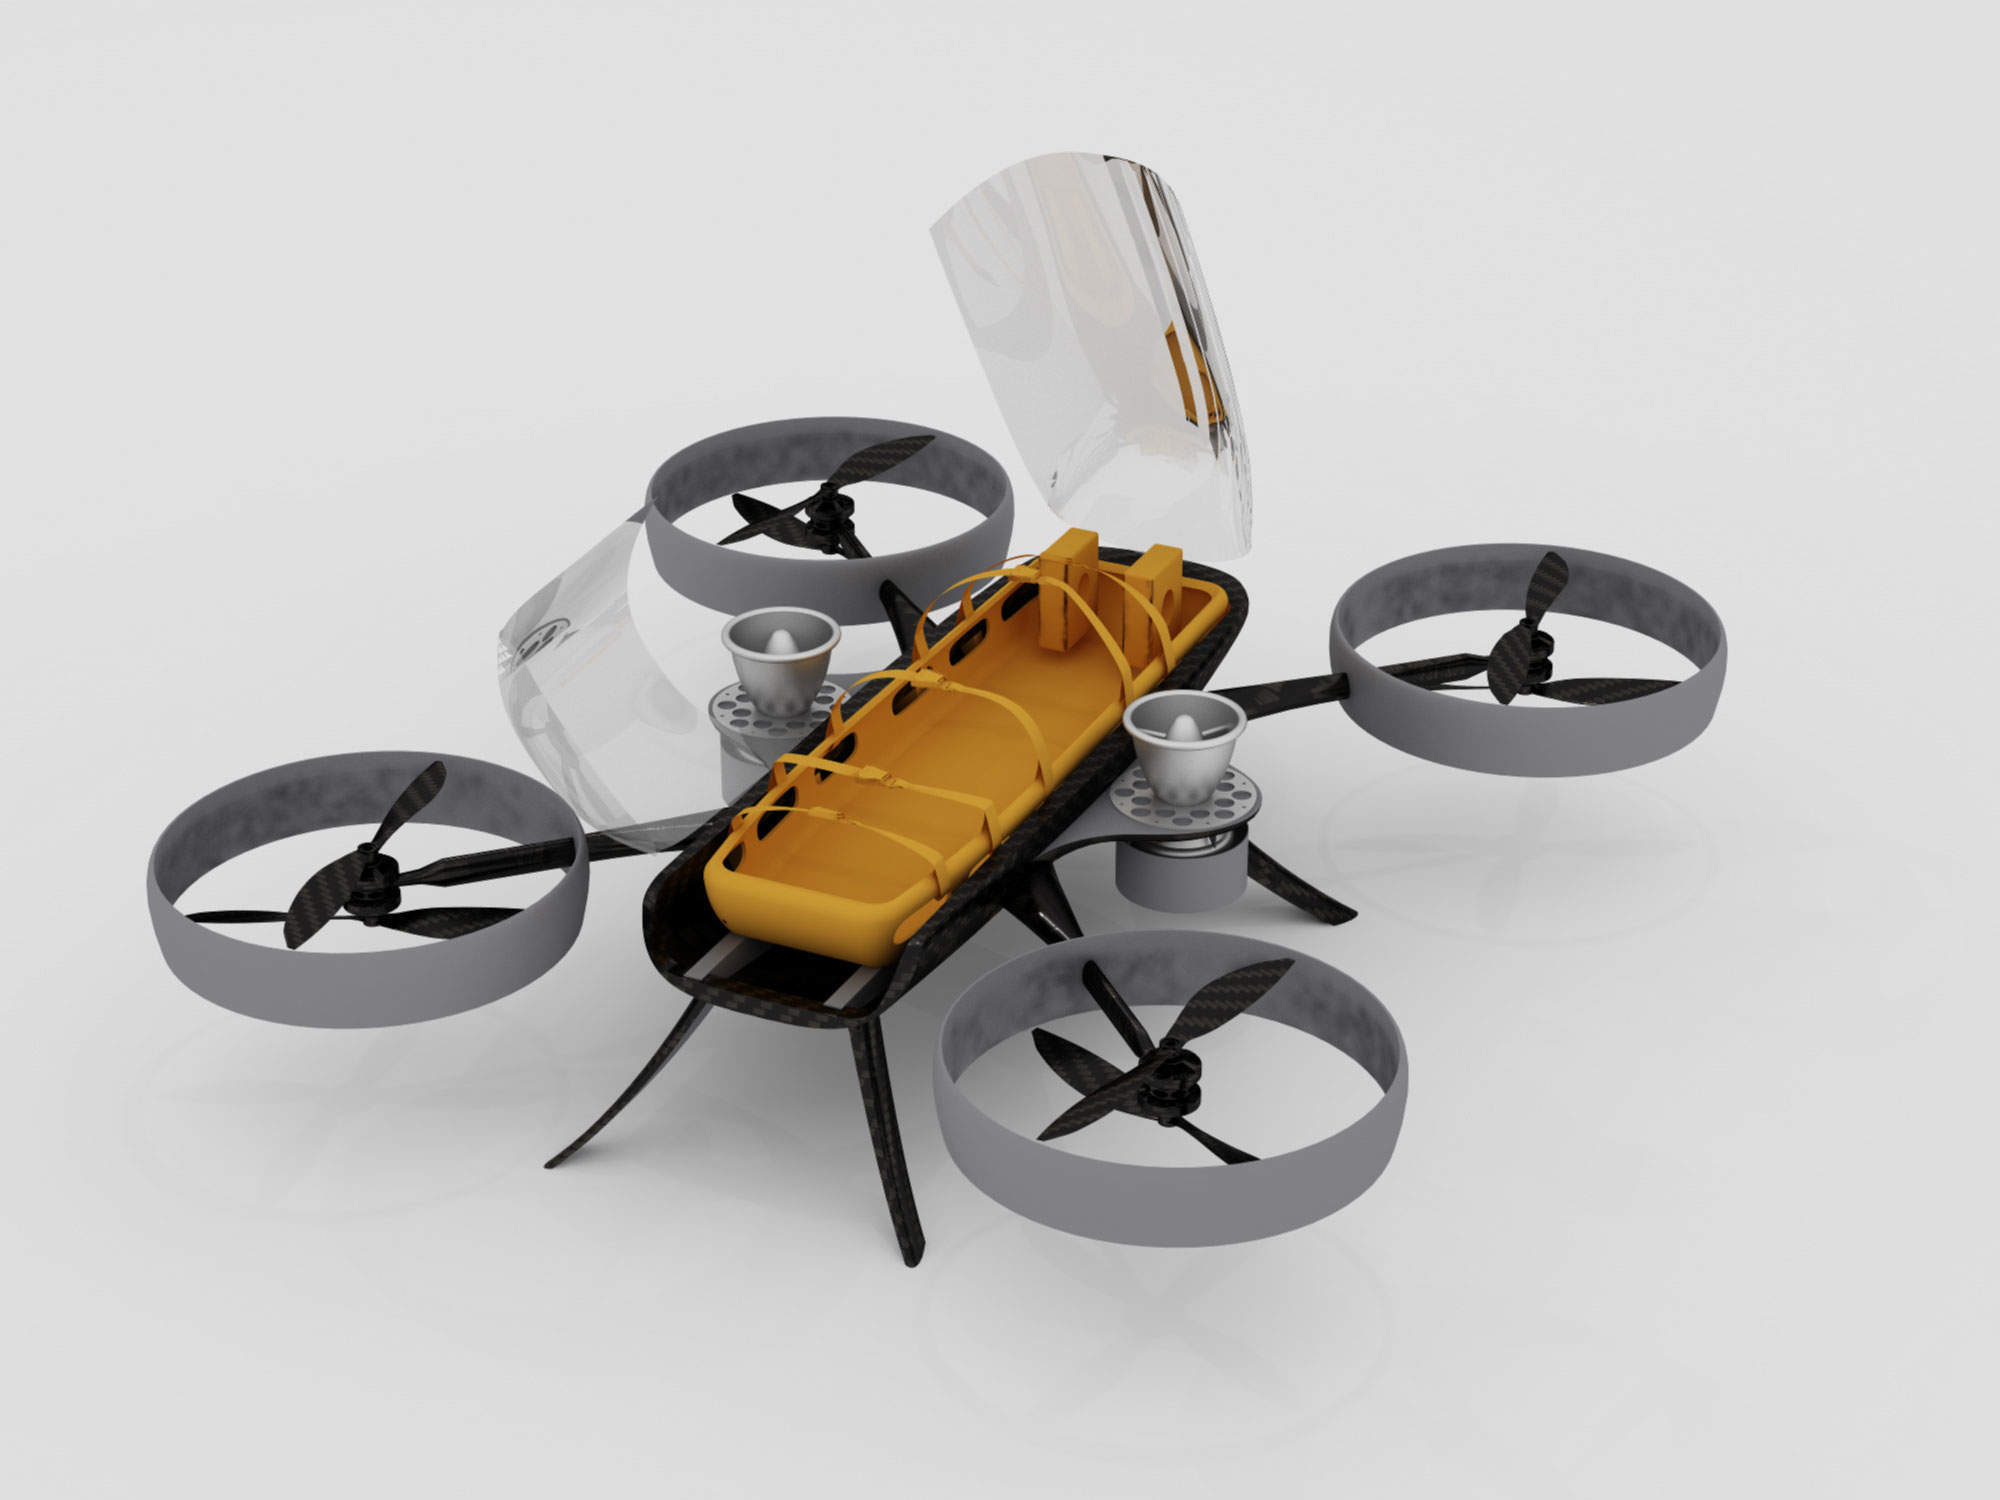 Autonomous drone ambulance wins development funding